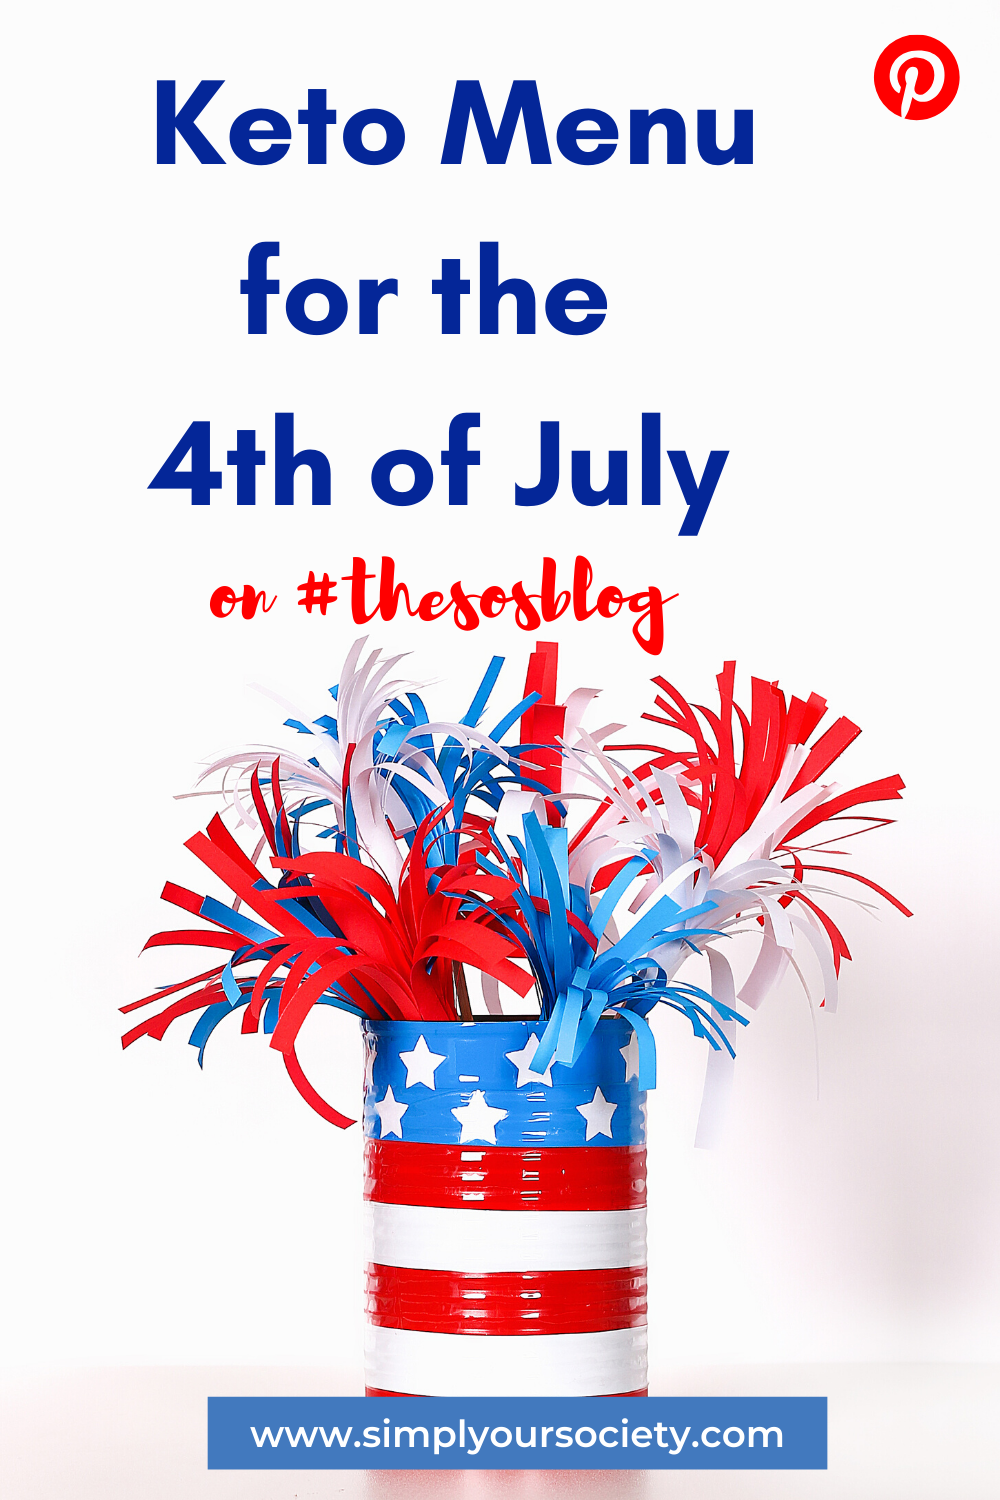 white background with red white and blue decorations for 4th of july, keto dip, what chips are keto friendly, easy keto for beginners, keto meal, keto party dip, easy keto dinner plan